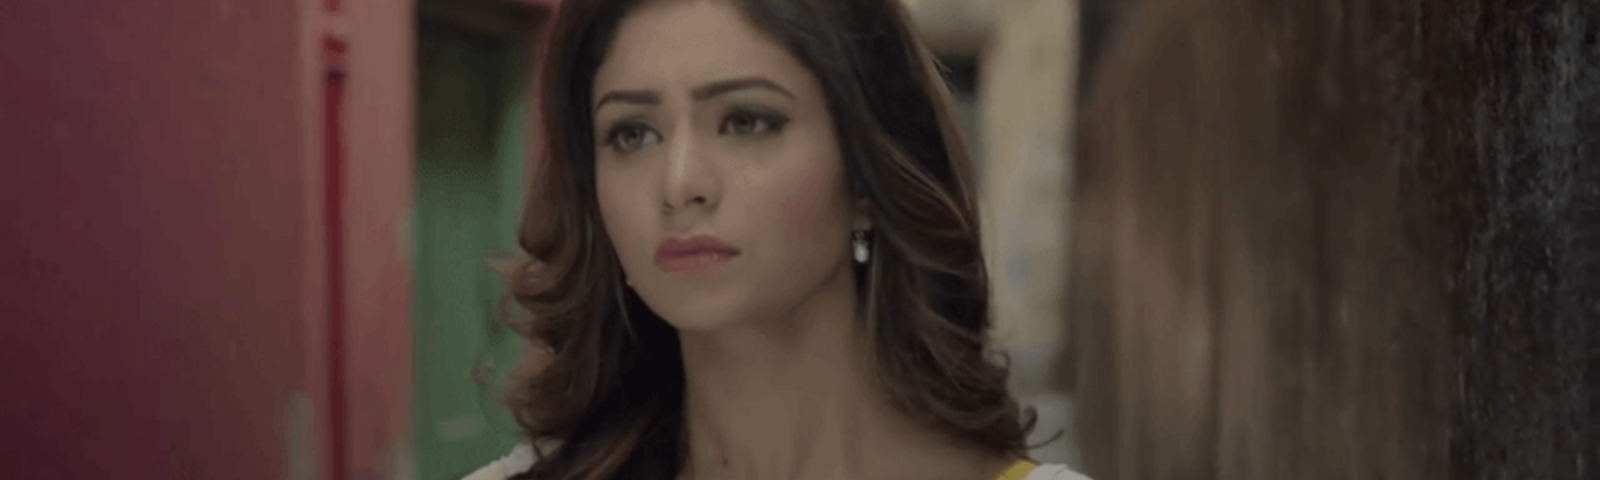 Senty Look of Ritabhari Chakraborty in the recent images